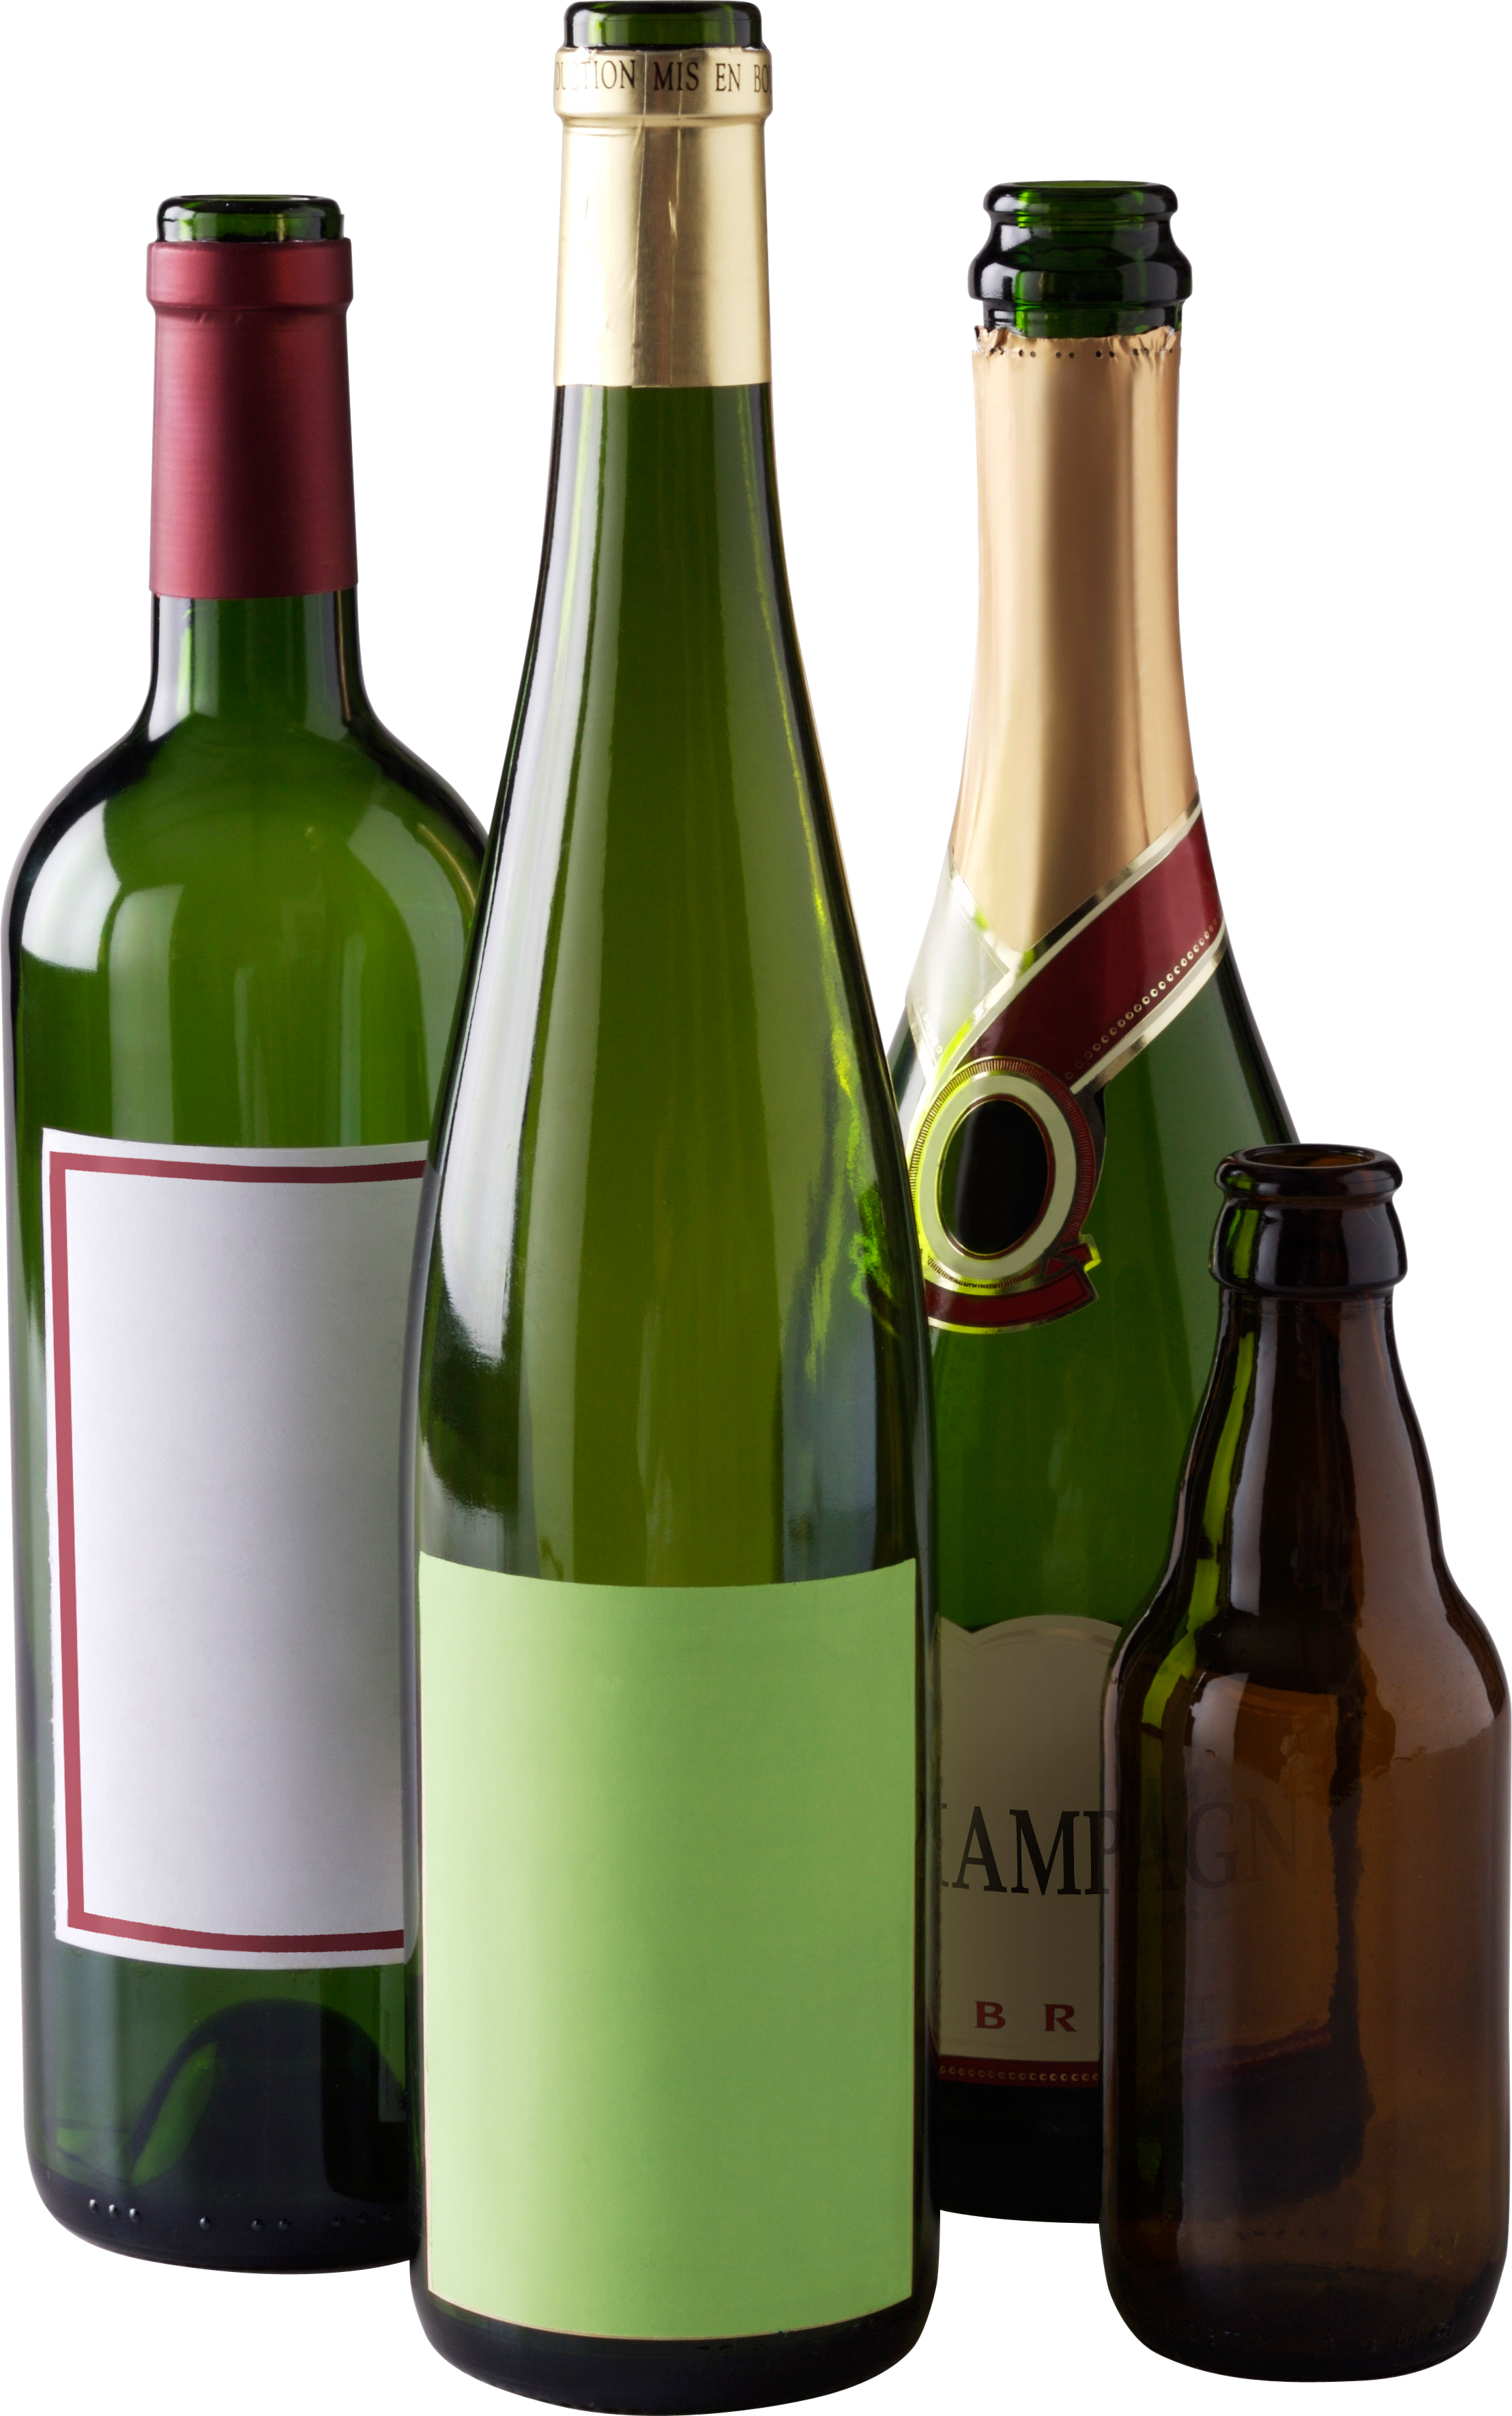 Png Bottles - Wine Bottle And Glass, Transparent background PNG HD thumbnail